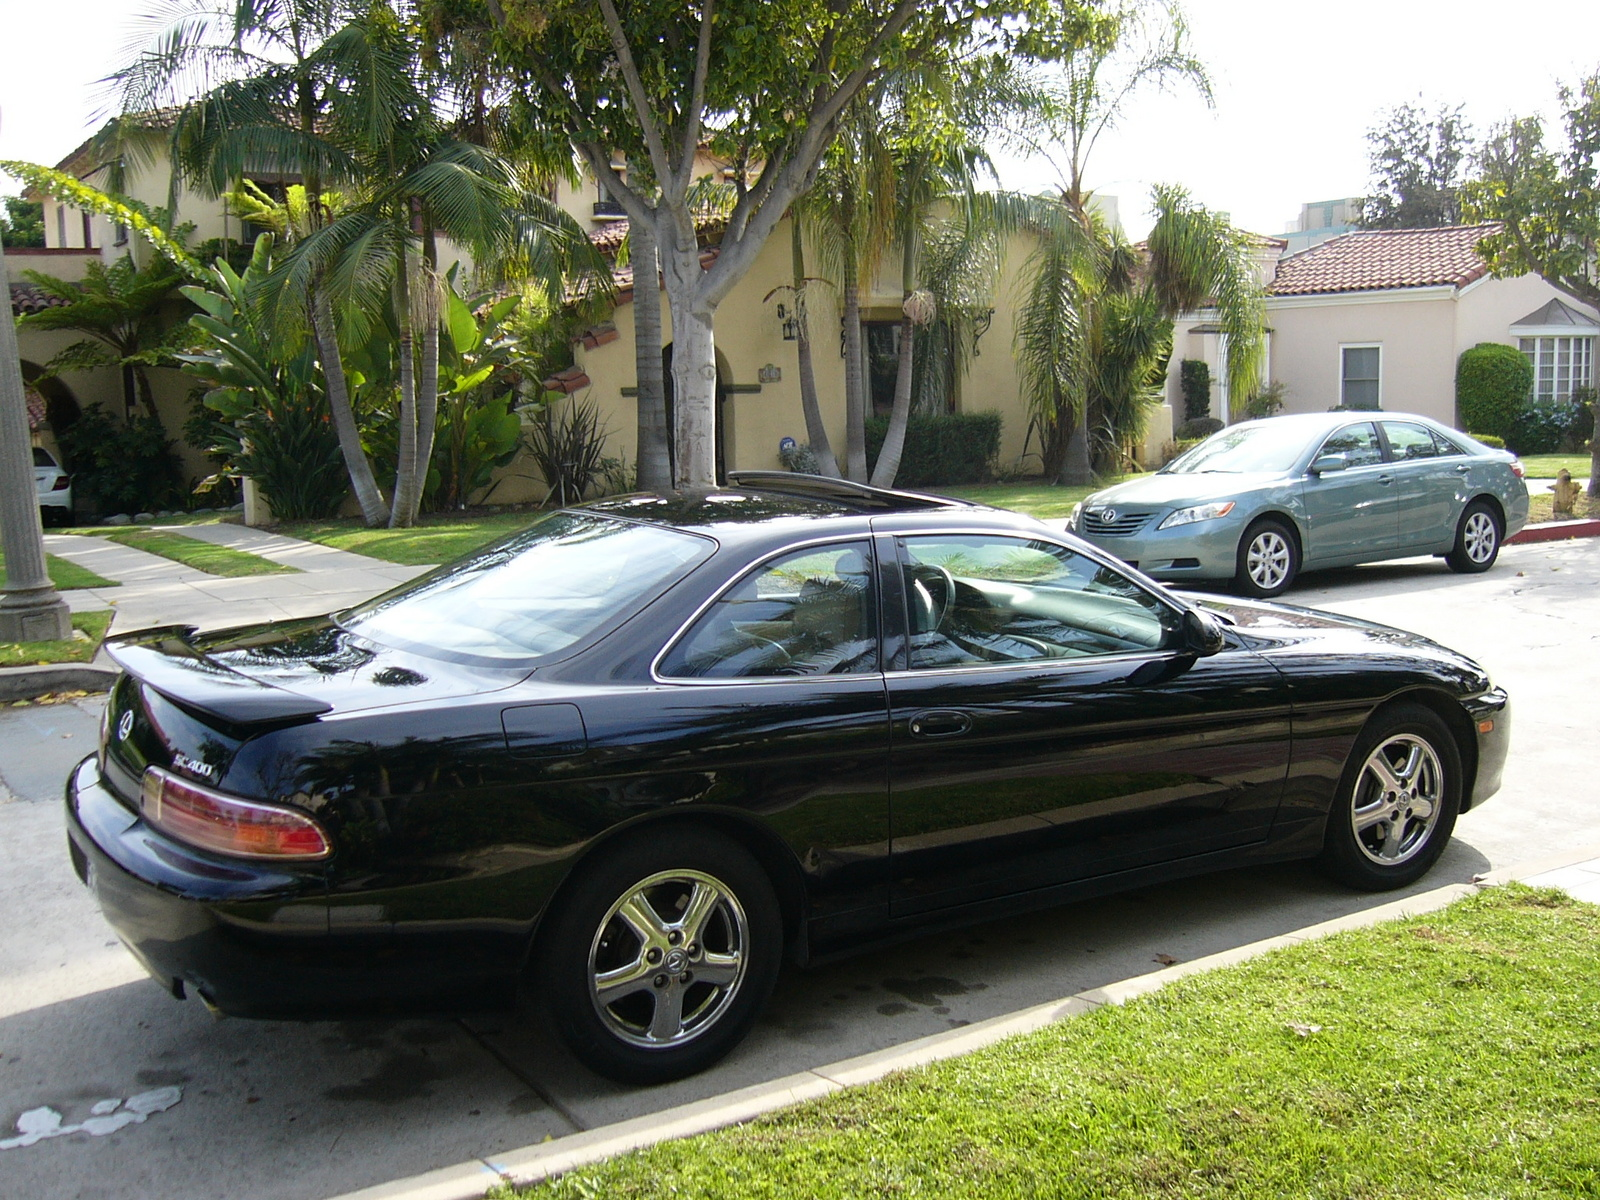 Picture of 1998 Lexus SC 400 Base